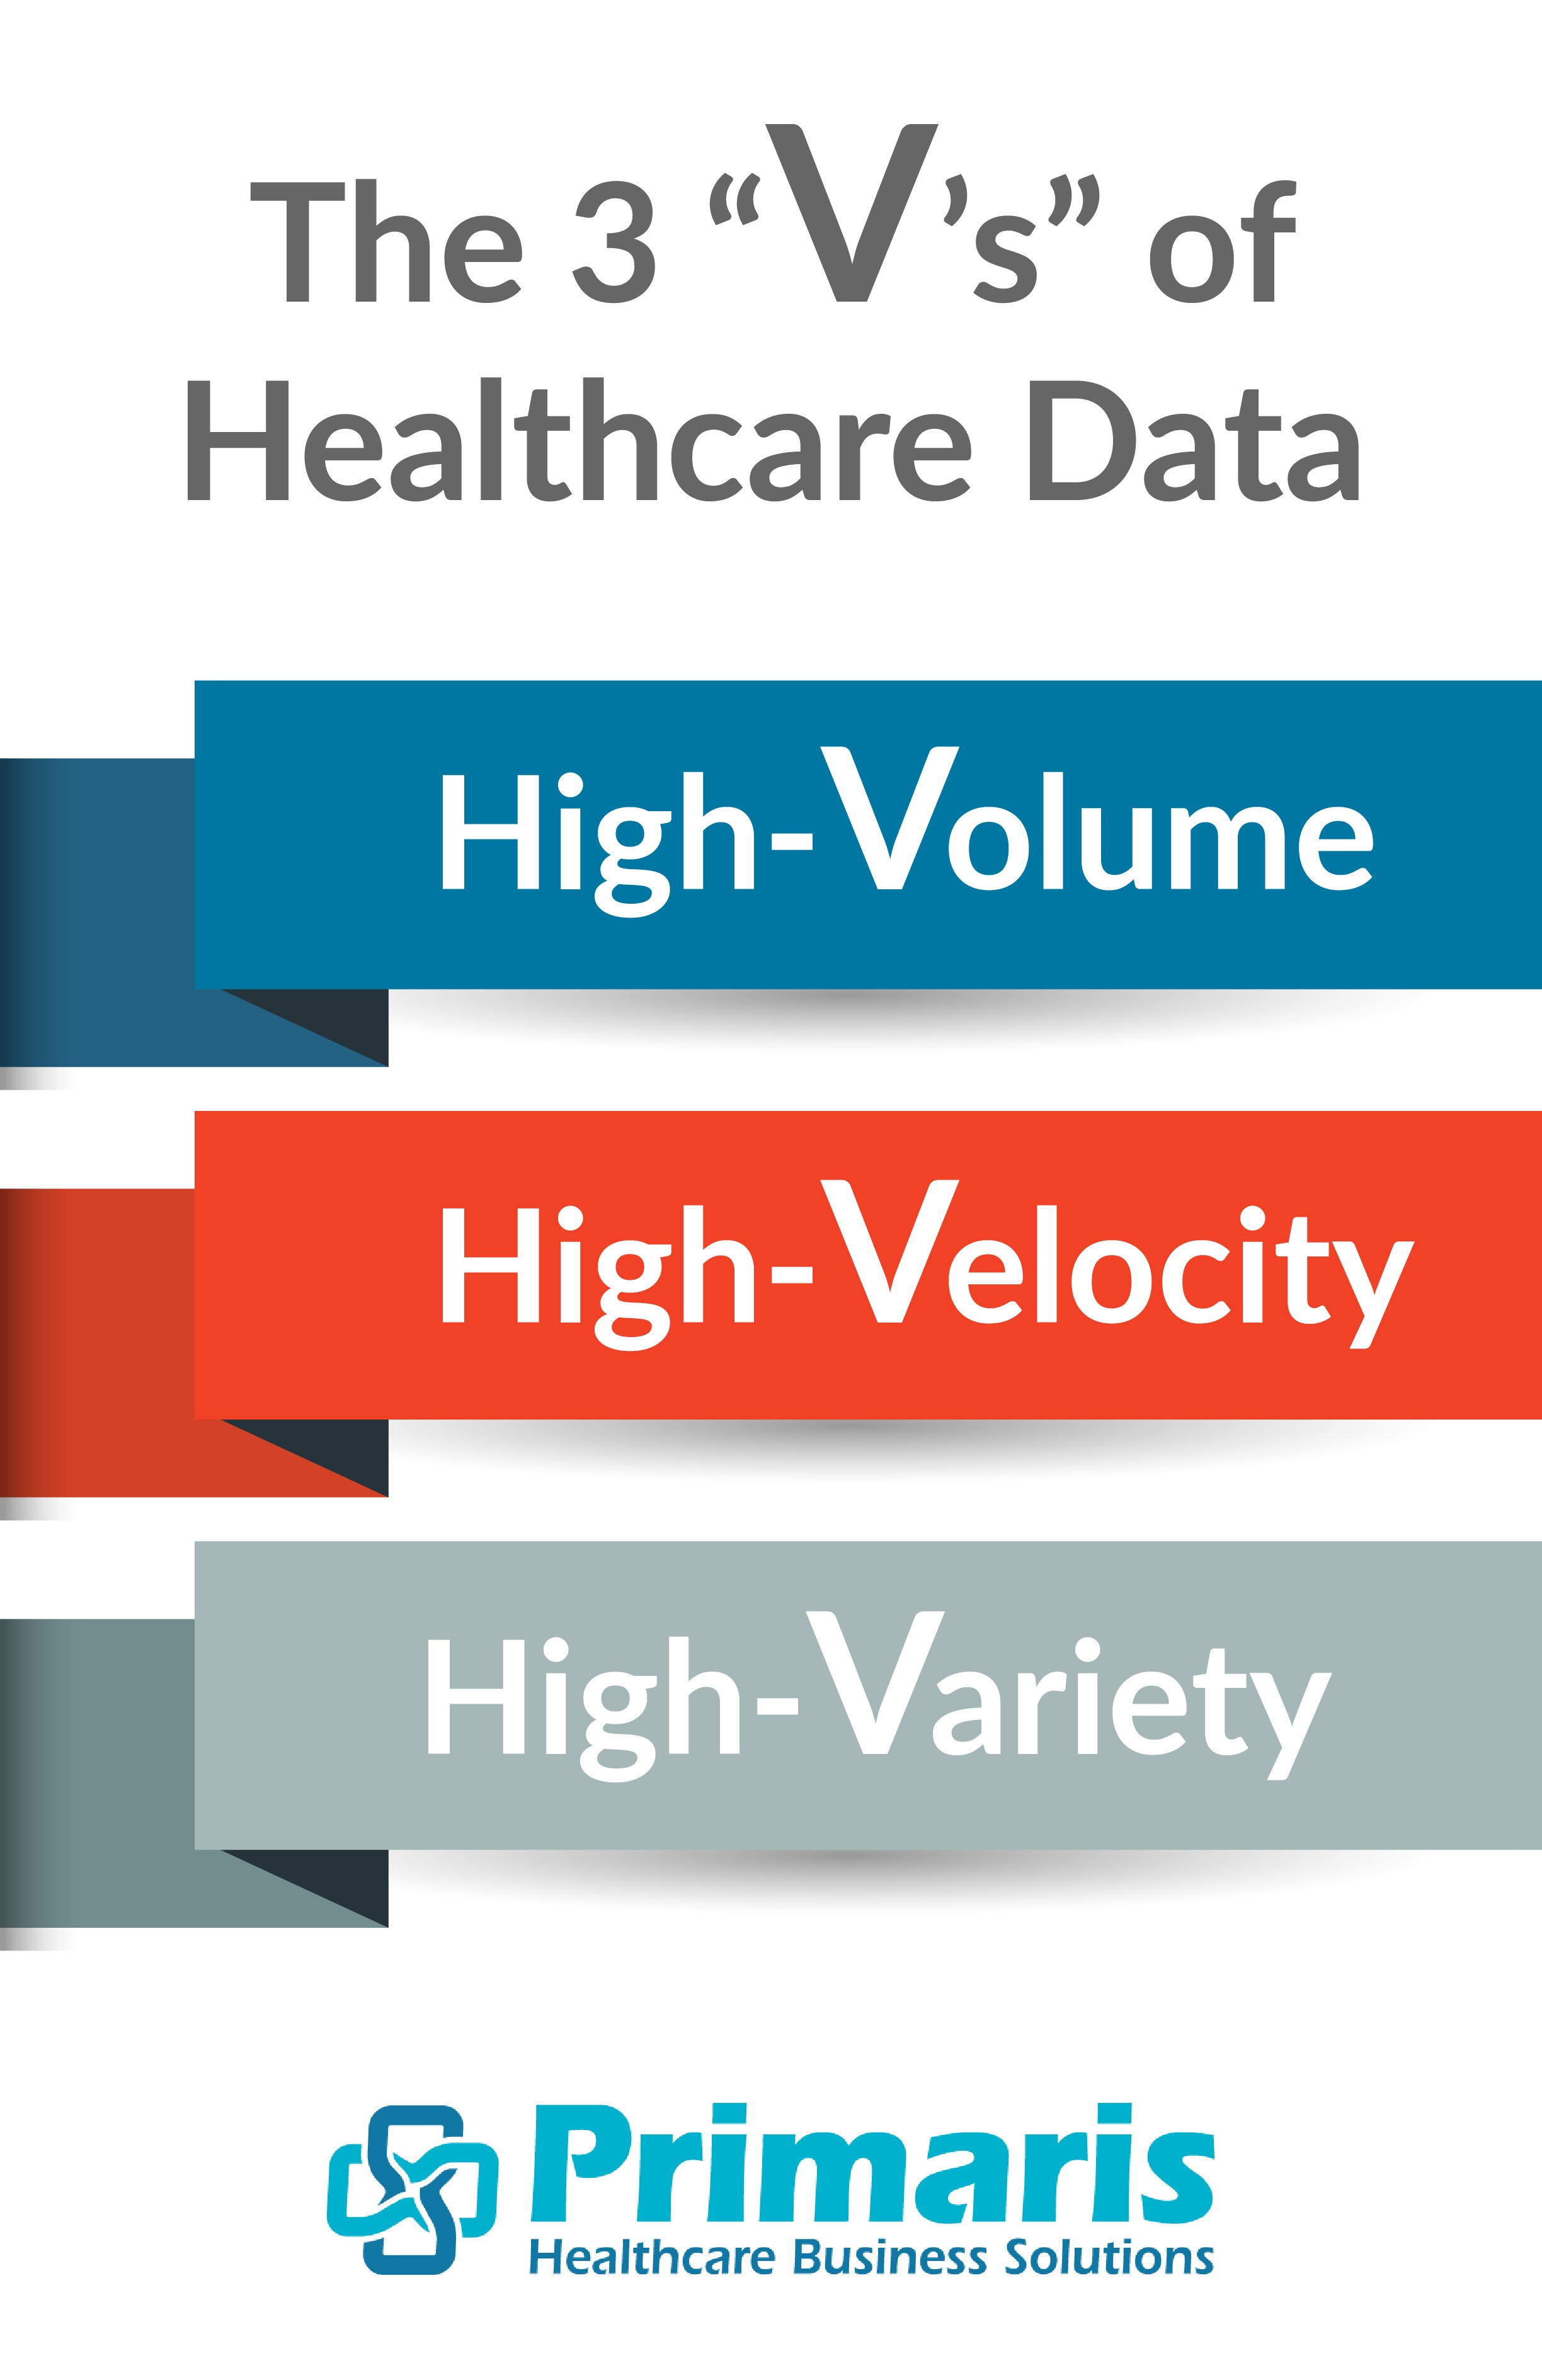 "The three ""V's"" of healthcare data: high-volume, high-velocity, high-variety."